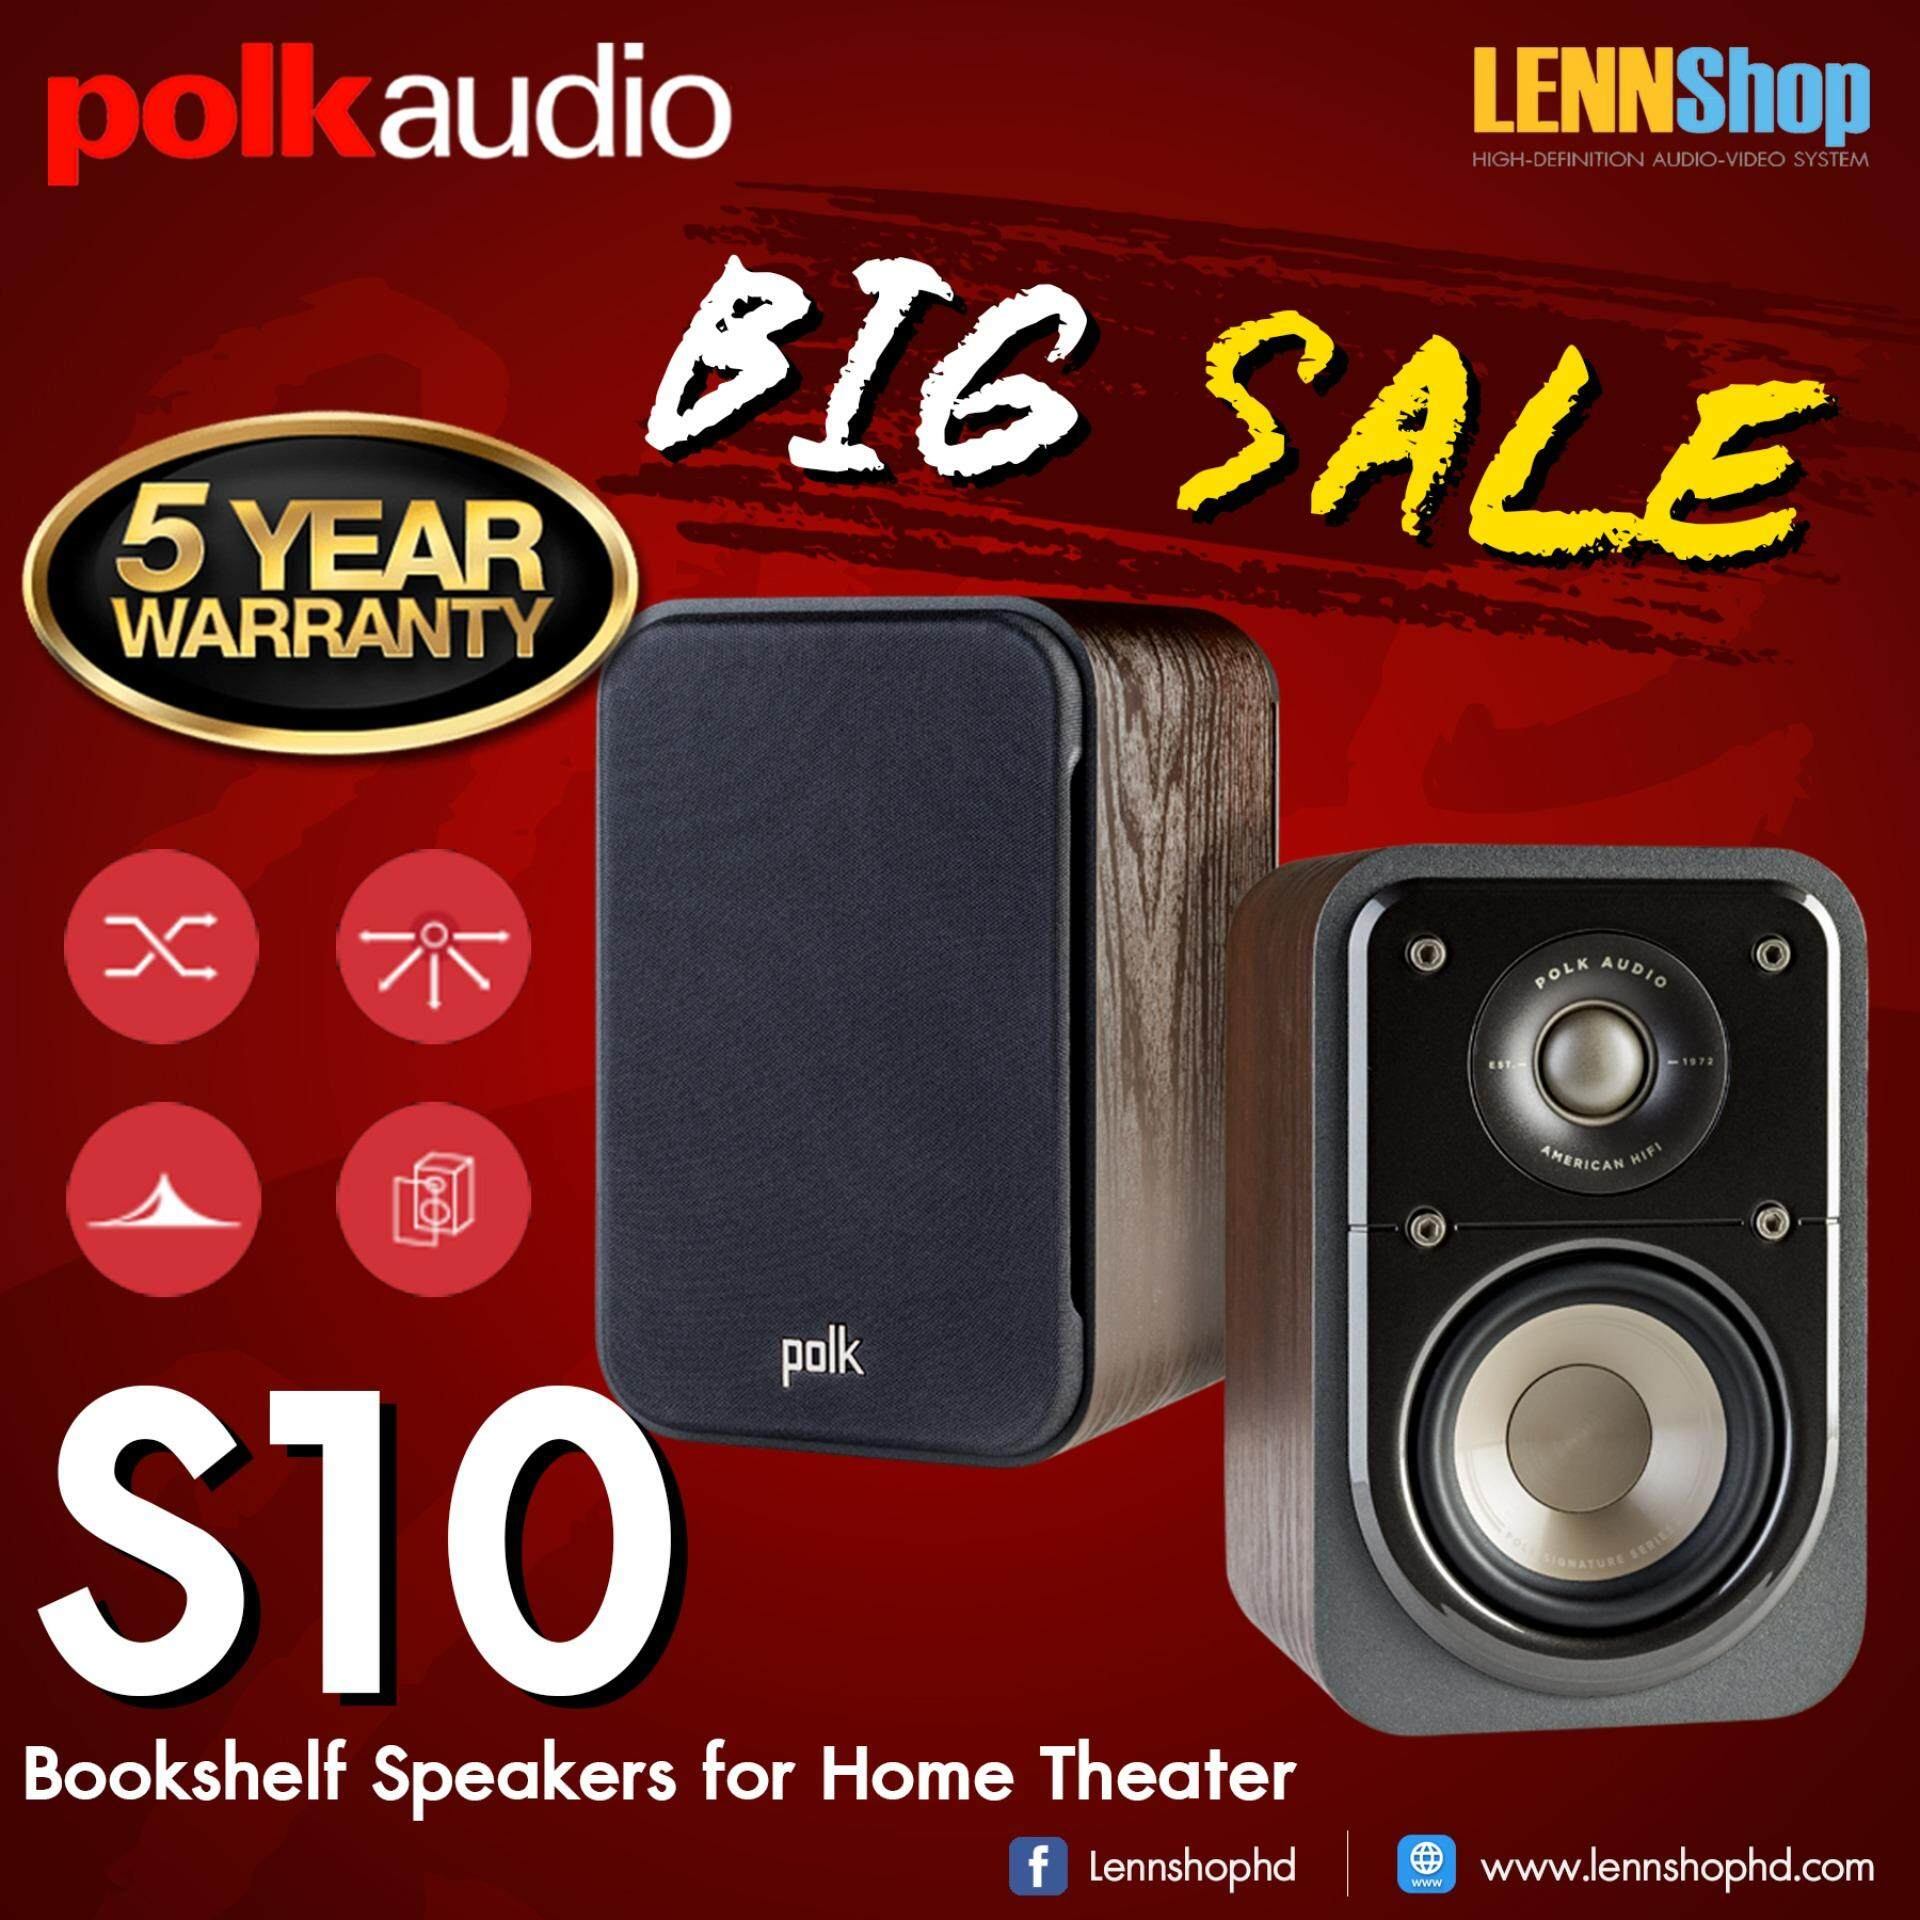 สอนใช้งาน  ศรีสะเกษ Polk Audio Signature Series S10 Bookshelf Speakers for Home Theater